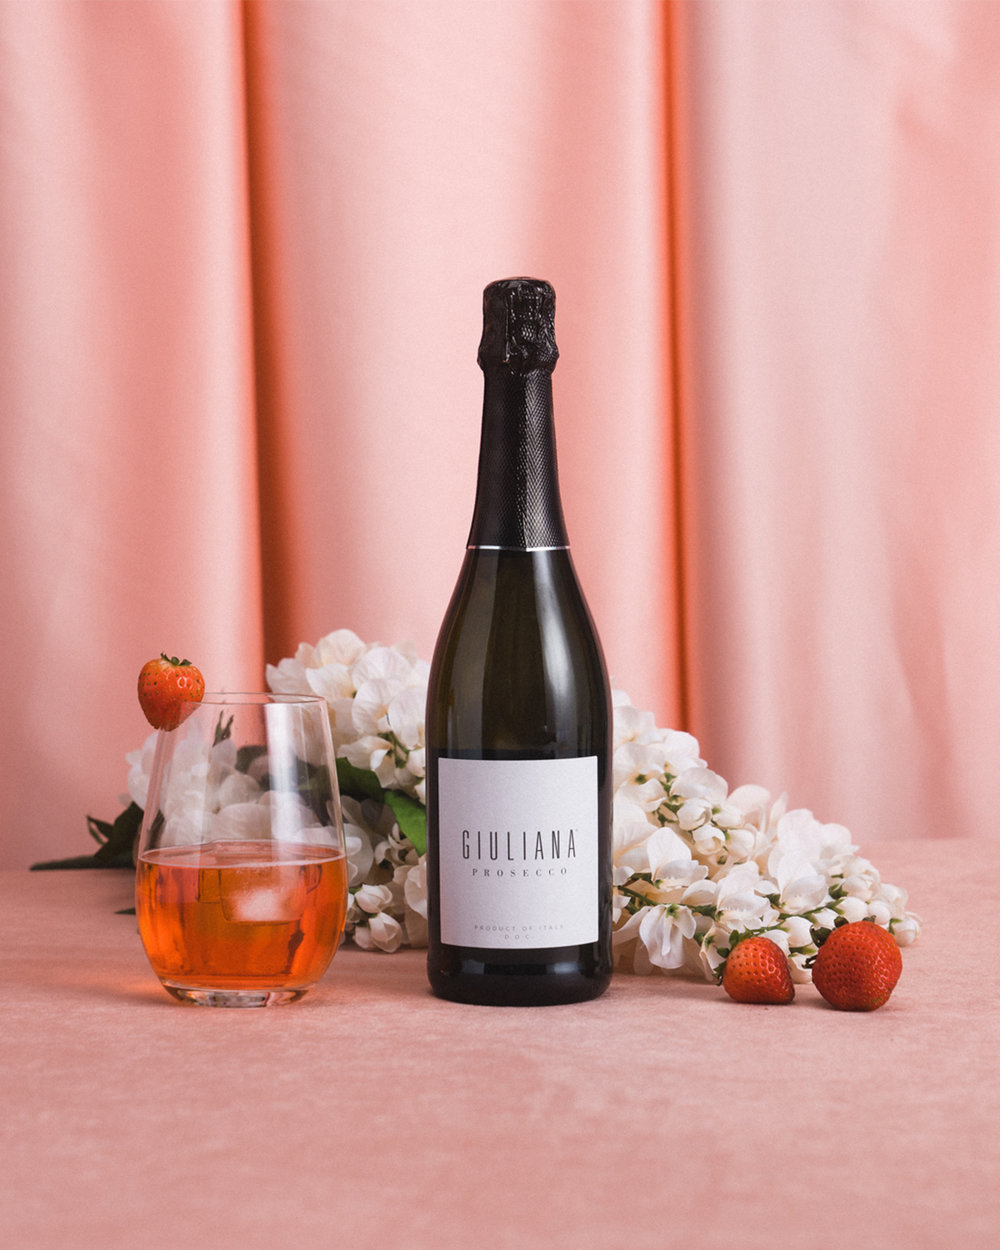 Rosé is red, violets are blue, it's time to pick up a bottle of Giuliana or two! Say salute to the weekend with this Rosé Spritz, expertly crafted with #GiulianaProsecco.